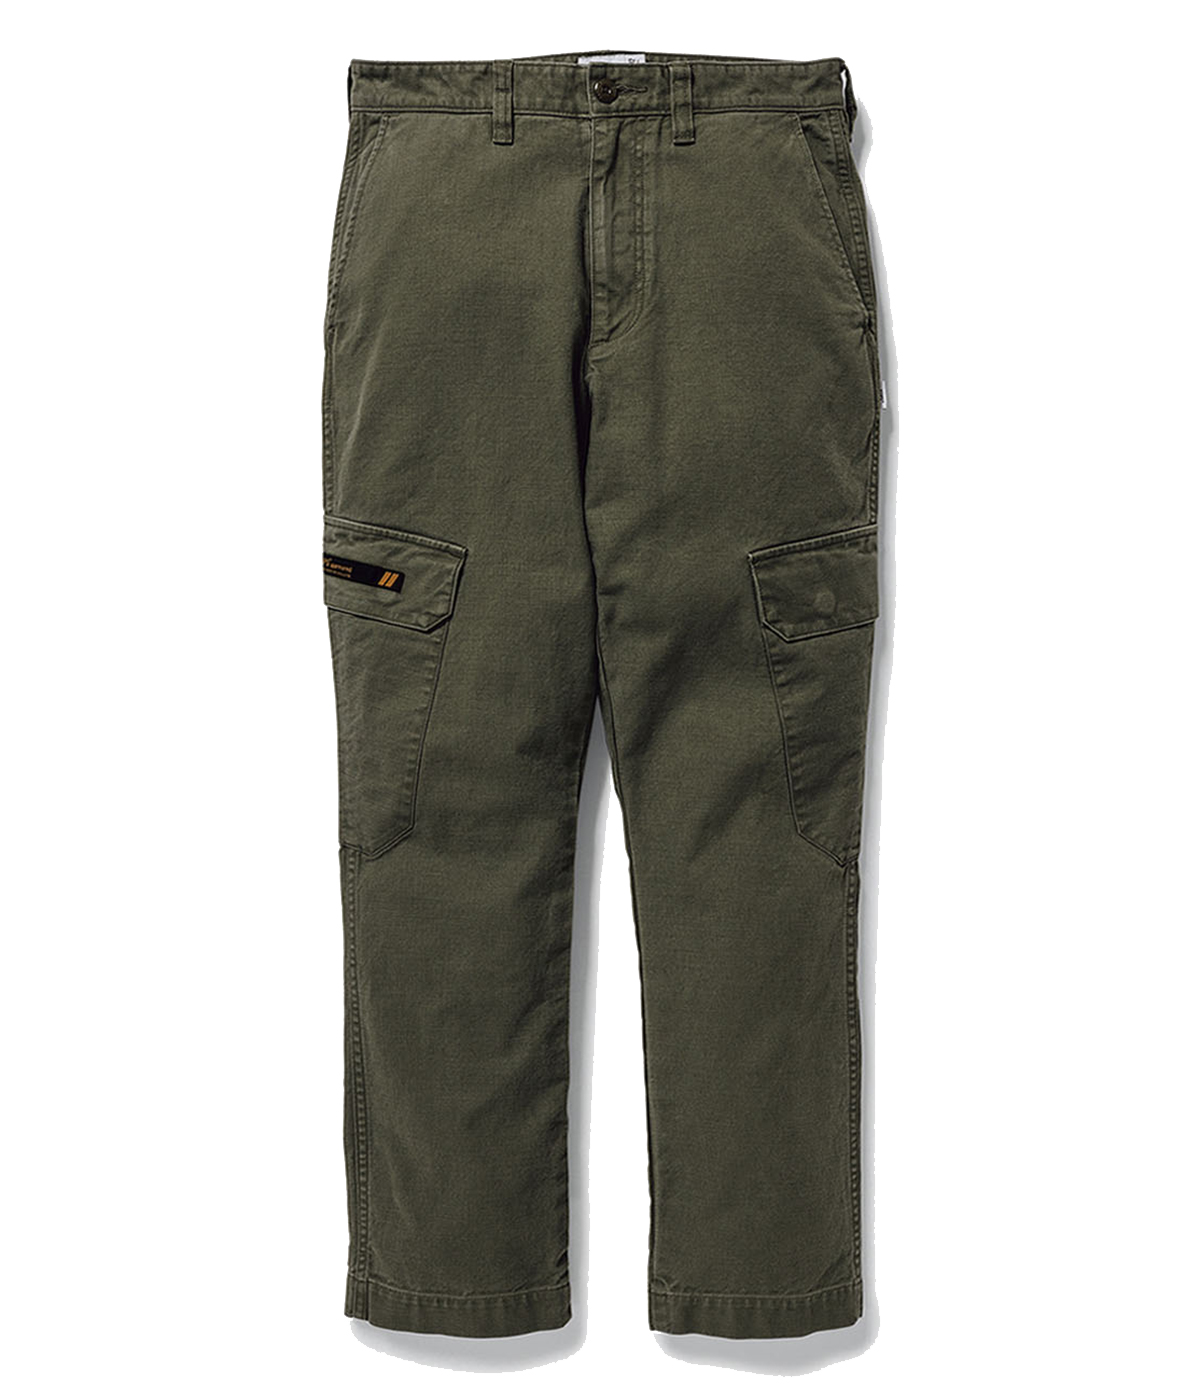 JUNGLE SKINNY / TROUSERS. COTTON. SERGE